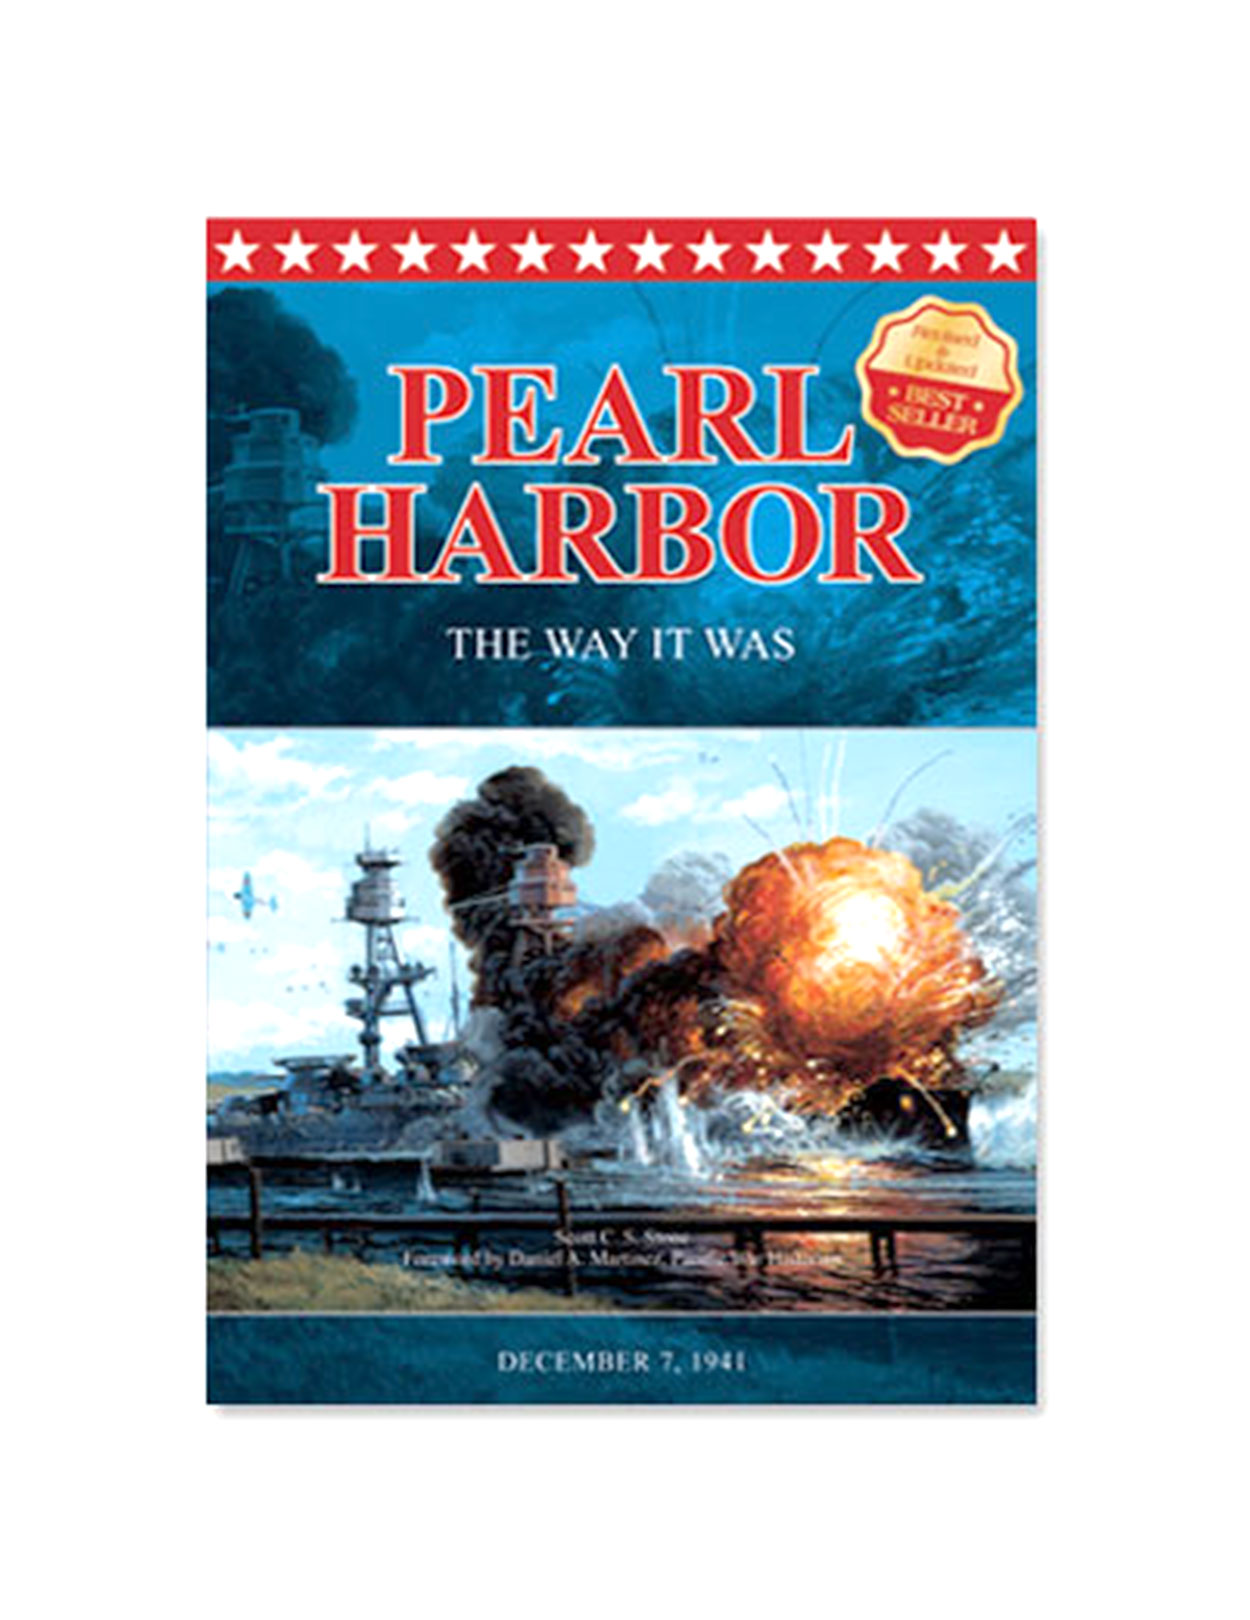 Pearl harbor clothing store